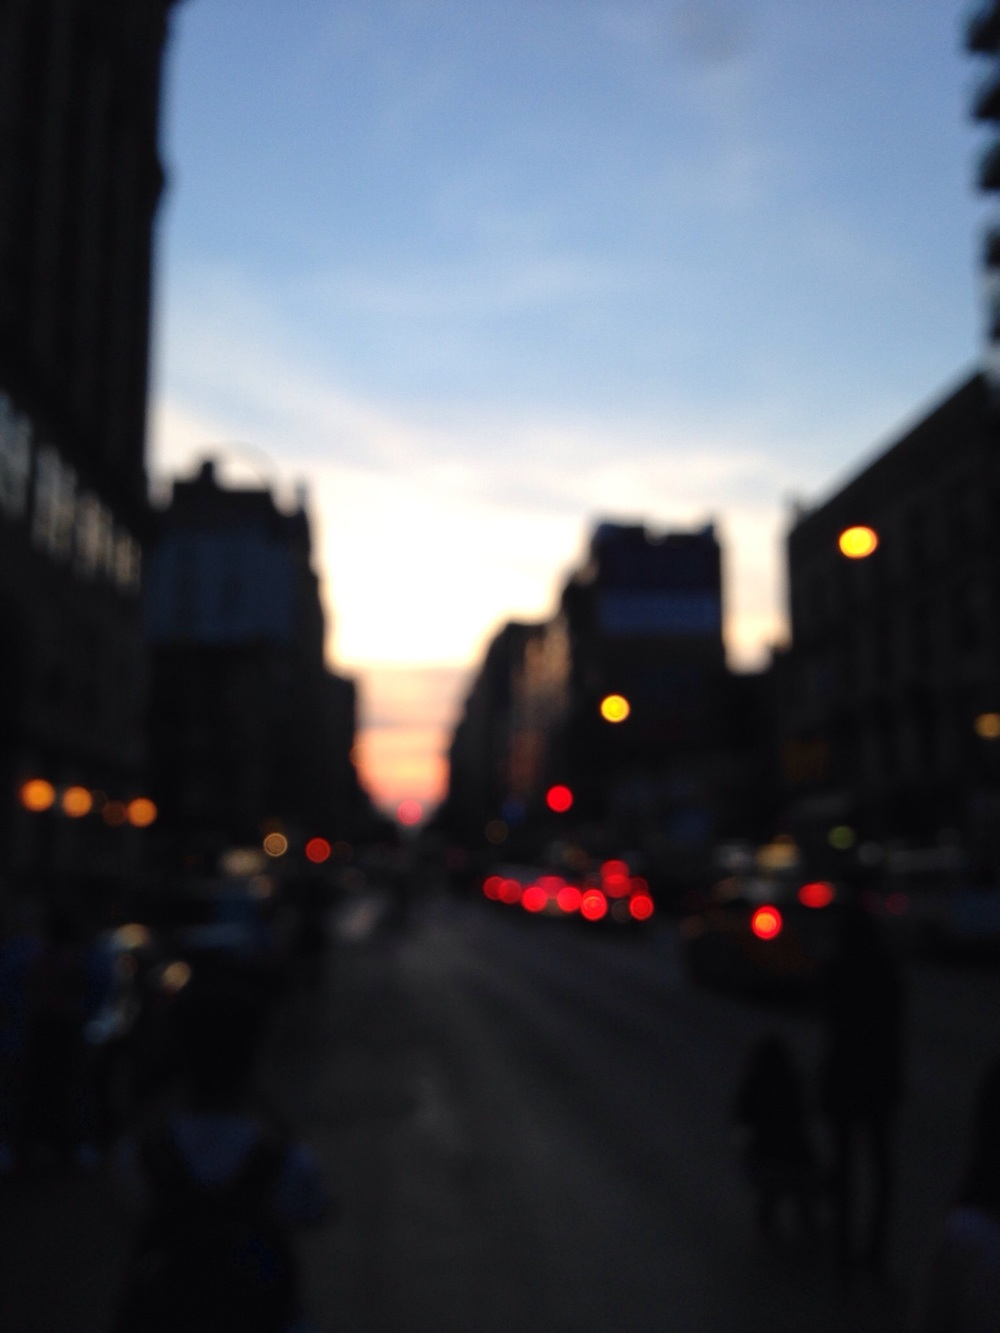 NYC Blurred. 2015